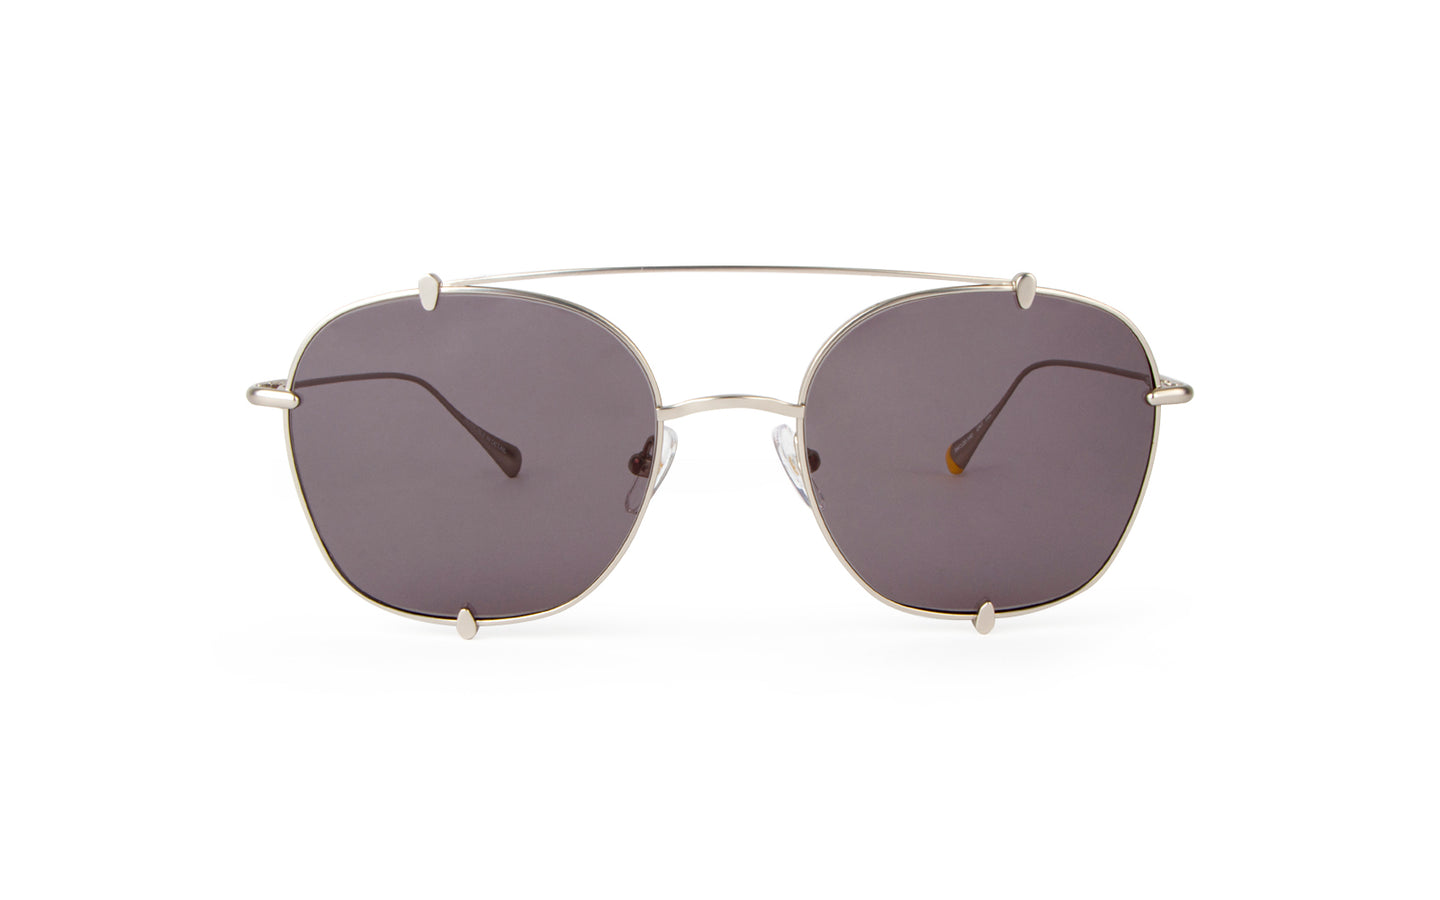 INVICTA SUNGLASSES DNA I 20313-DNA-03